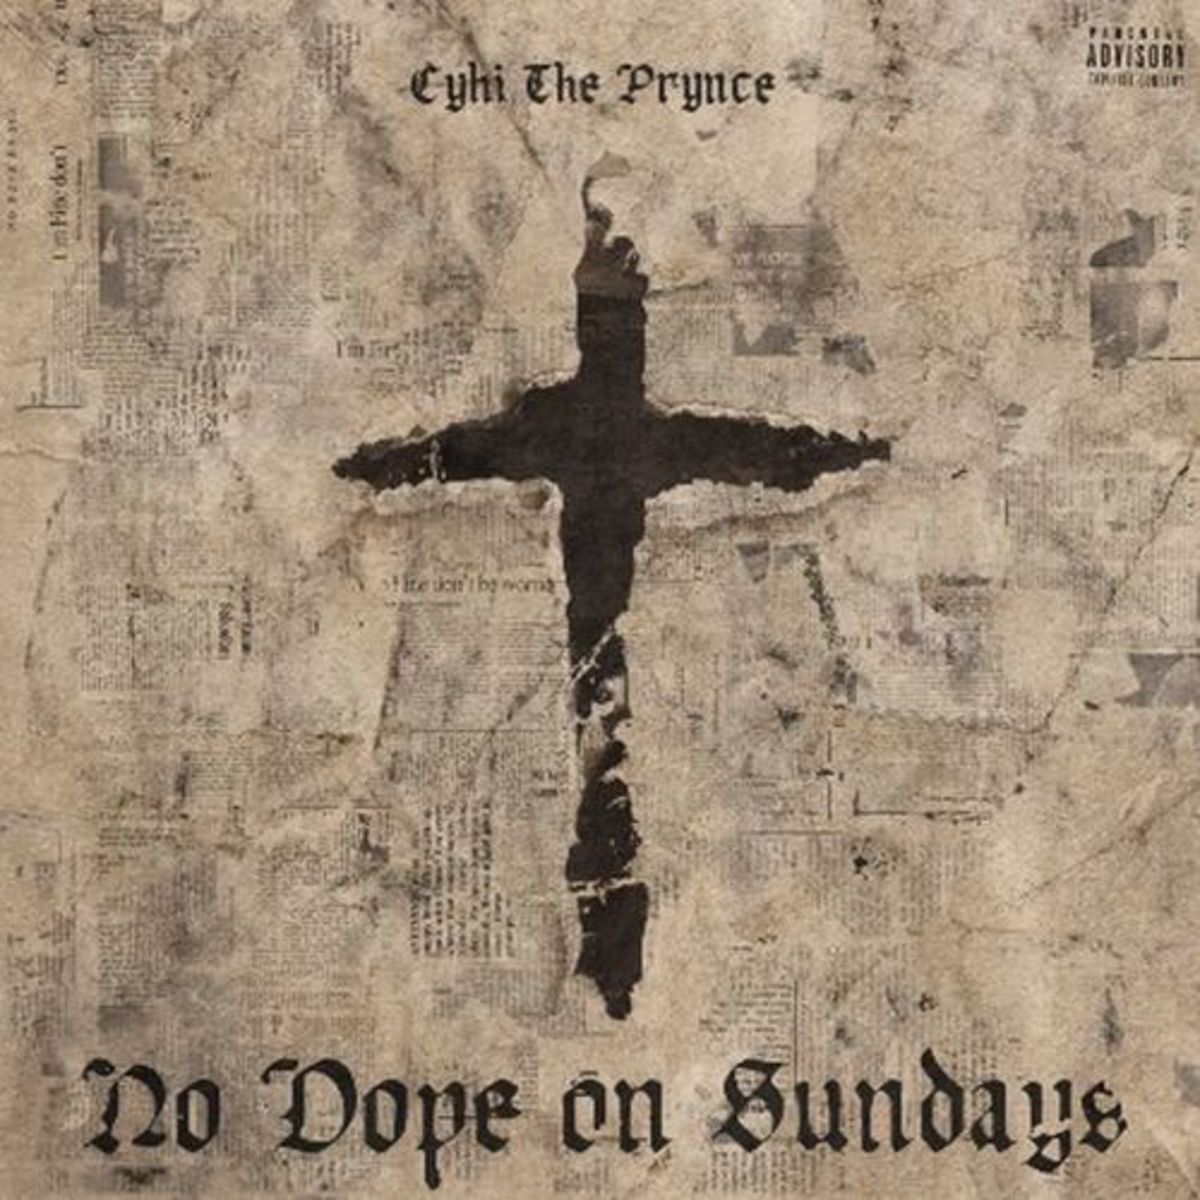 cyhi-the-prynce-no-dope-on-sundays.jpg